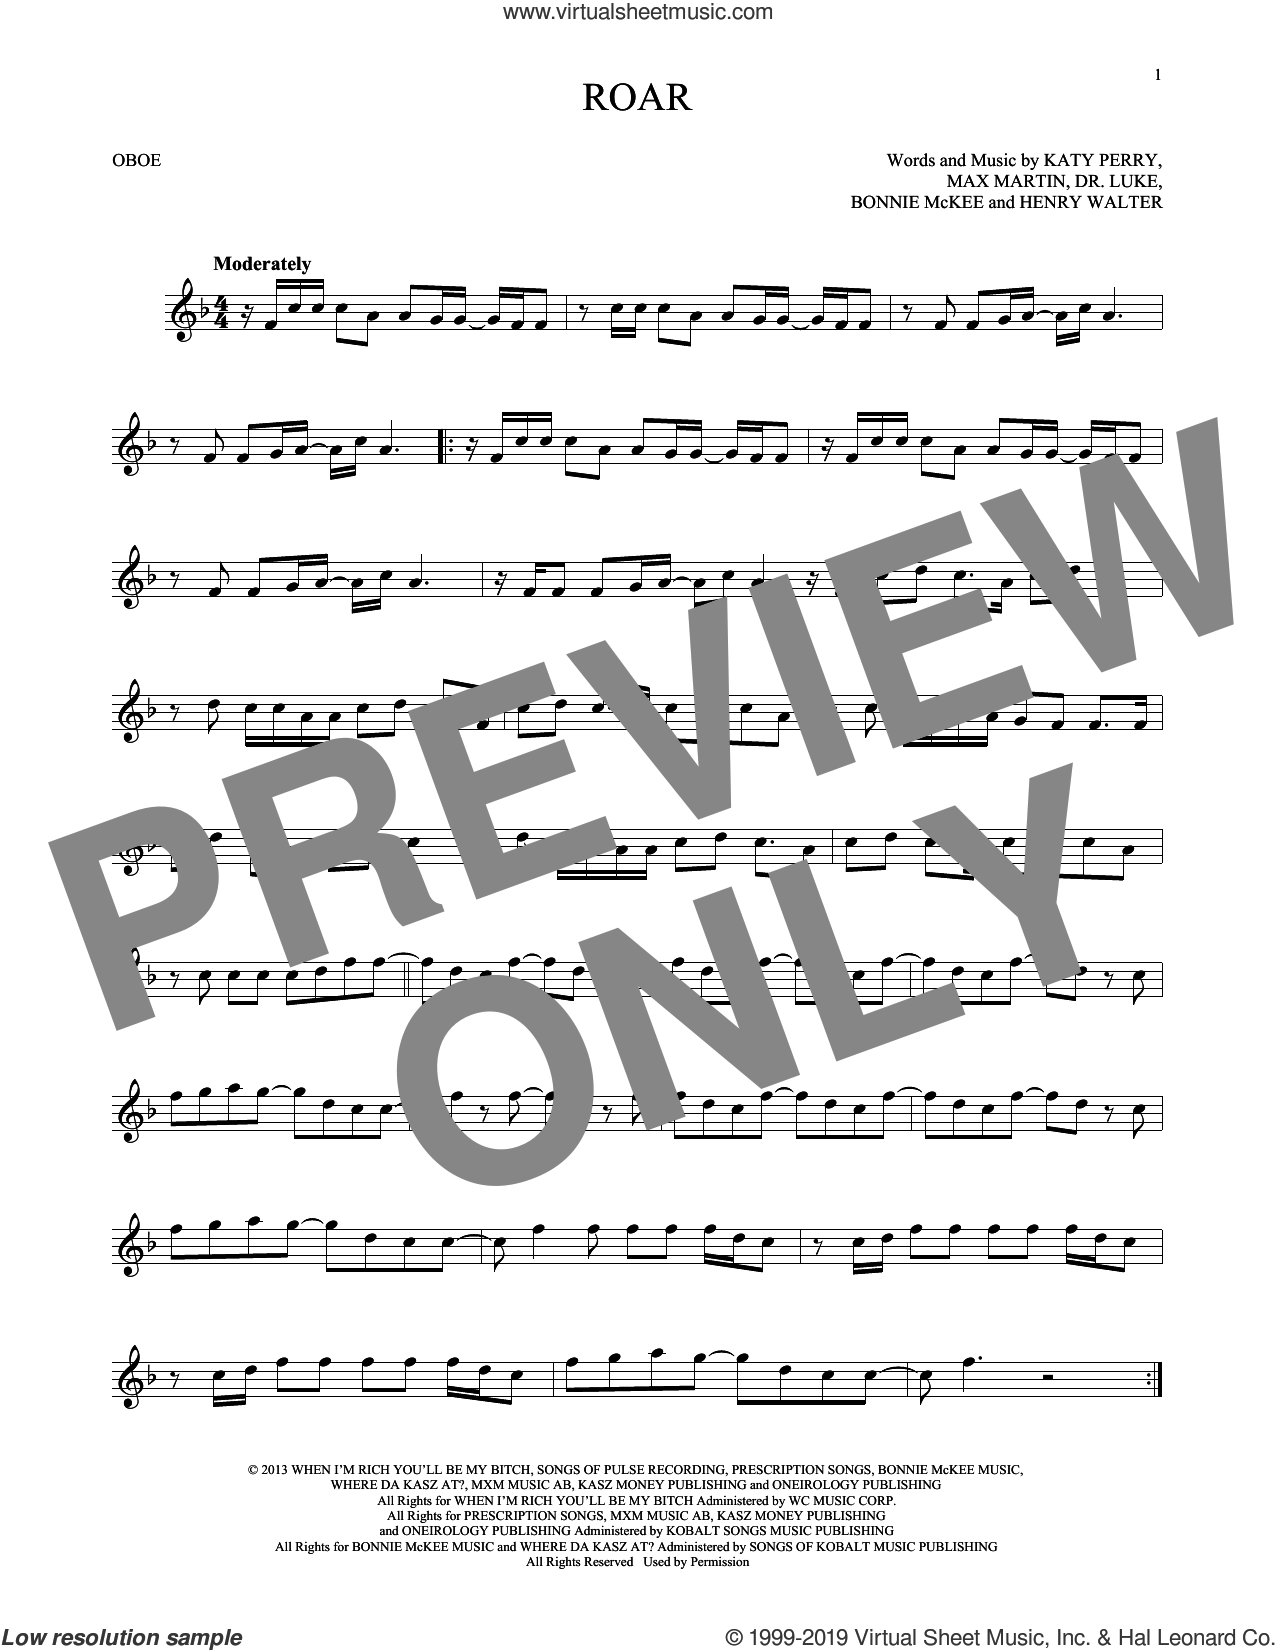 Roar sheet music for oboe solo by Katy Perry, Bonnie McKee, Dr. Luke, Henry Walter, Lukasz Gottwald and Max Martin, intermediate skill level